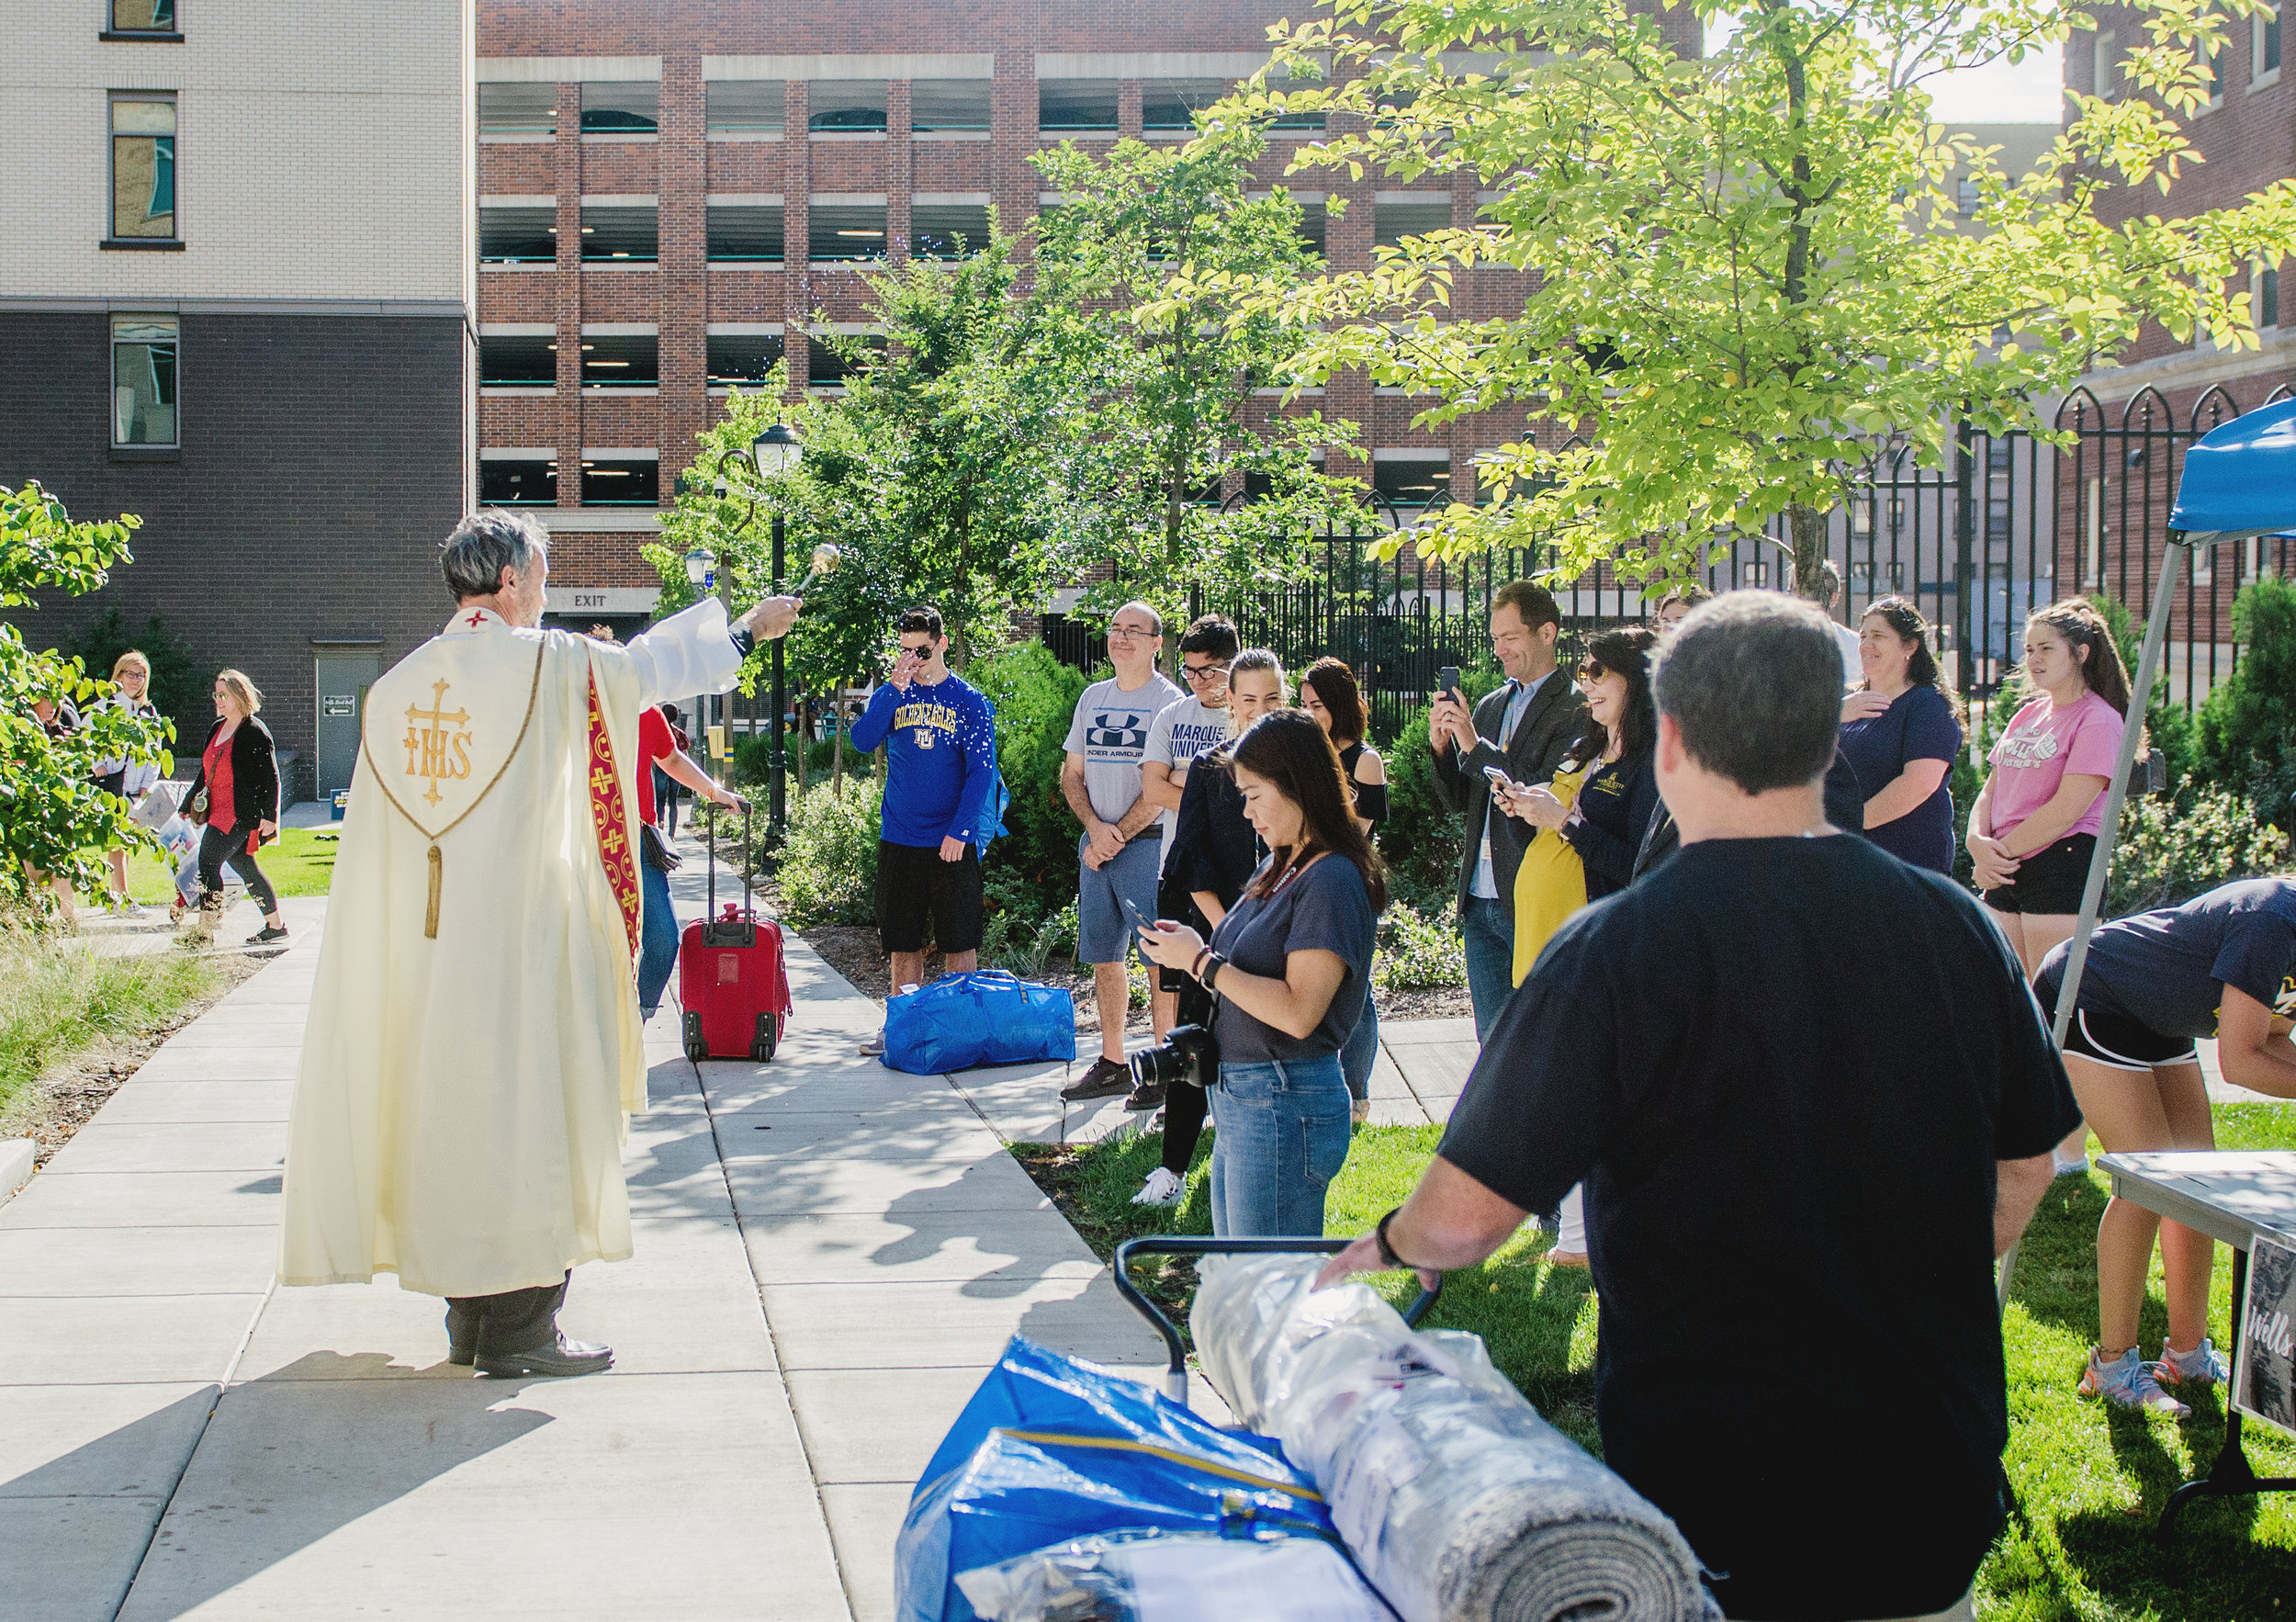 Rev. Michael Maher, S.J., residence minister and associate professor of history at Marquette University, offered a blessing to new students and their families at The Commons (photo by Marquette University)